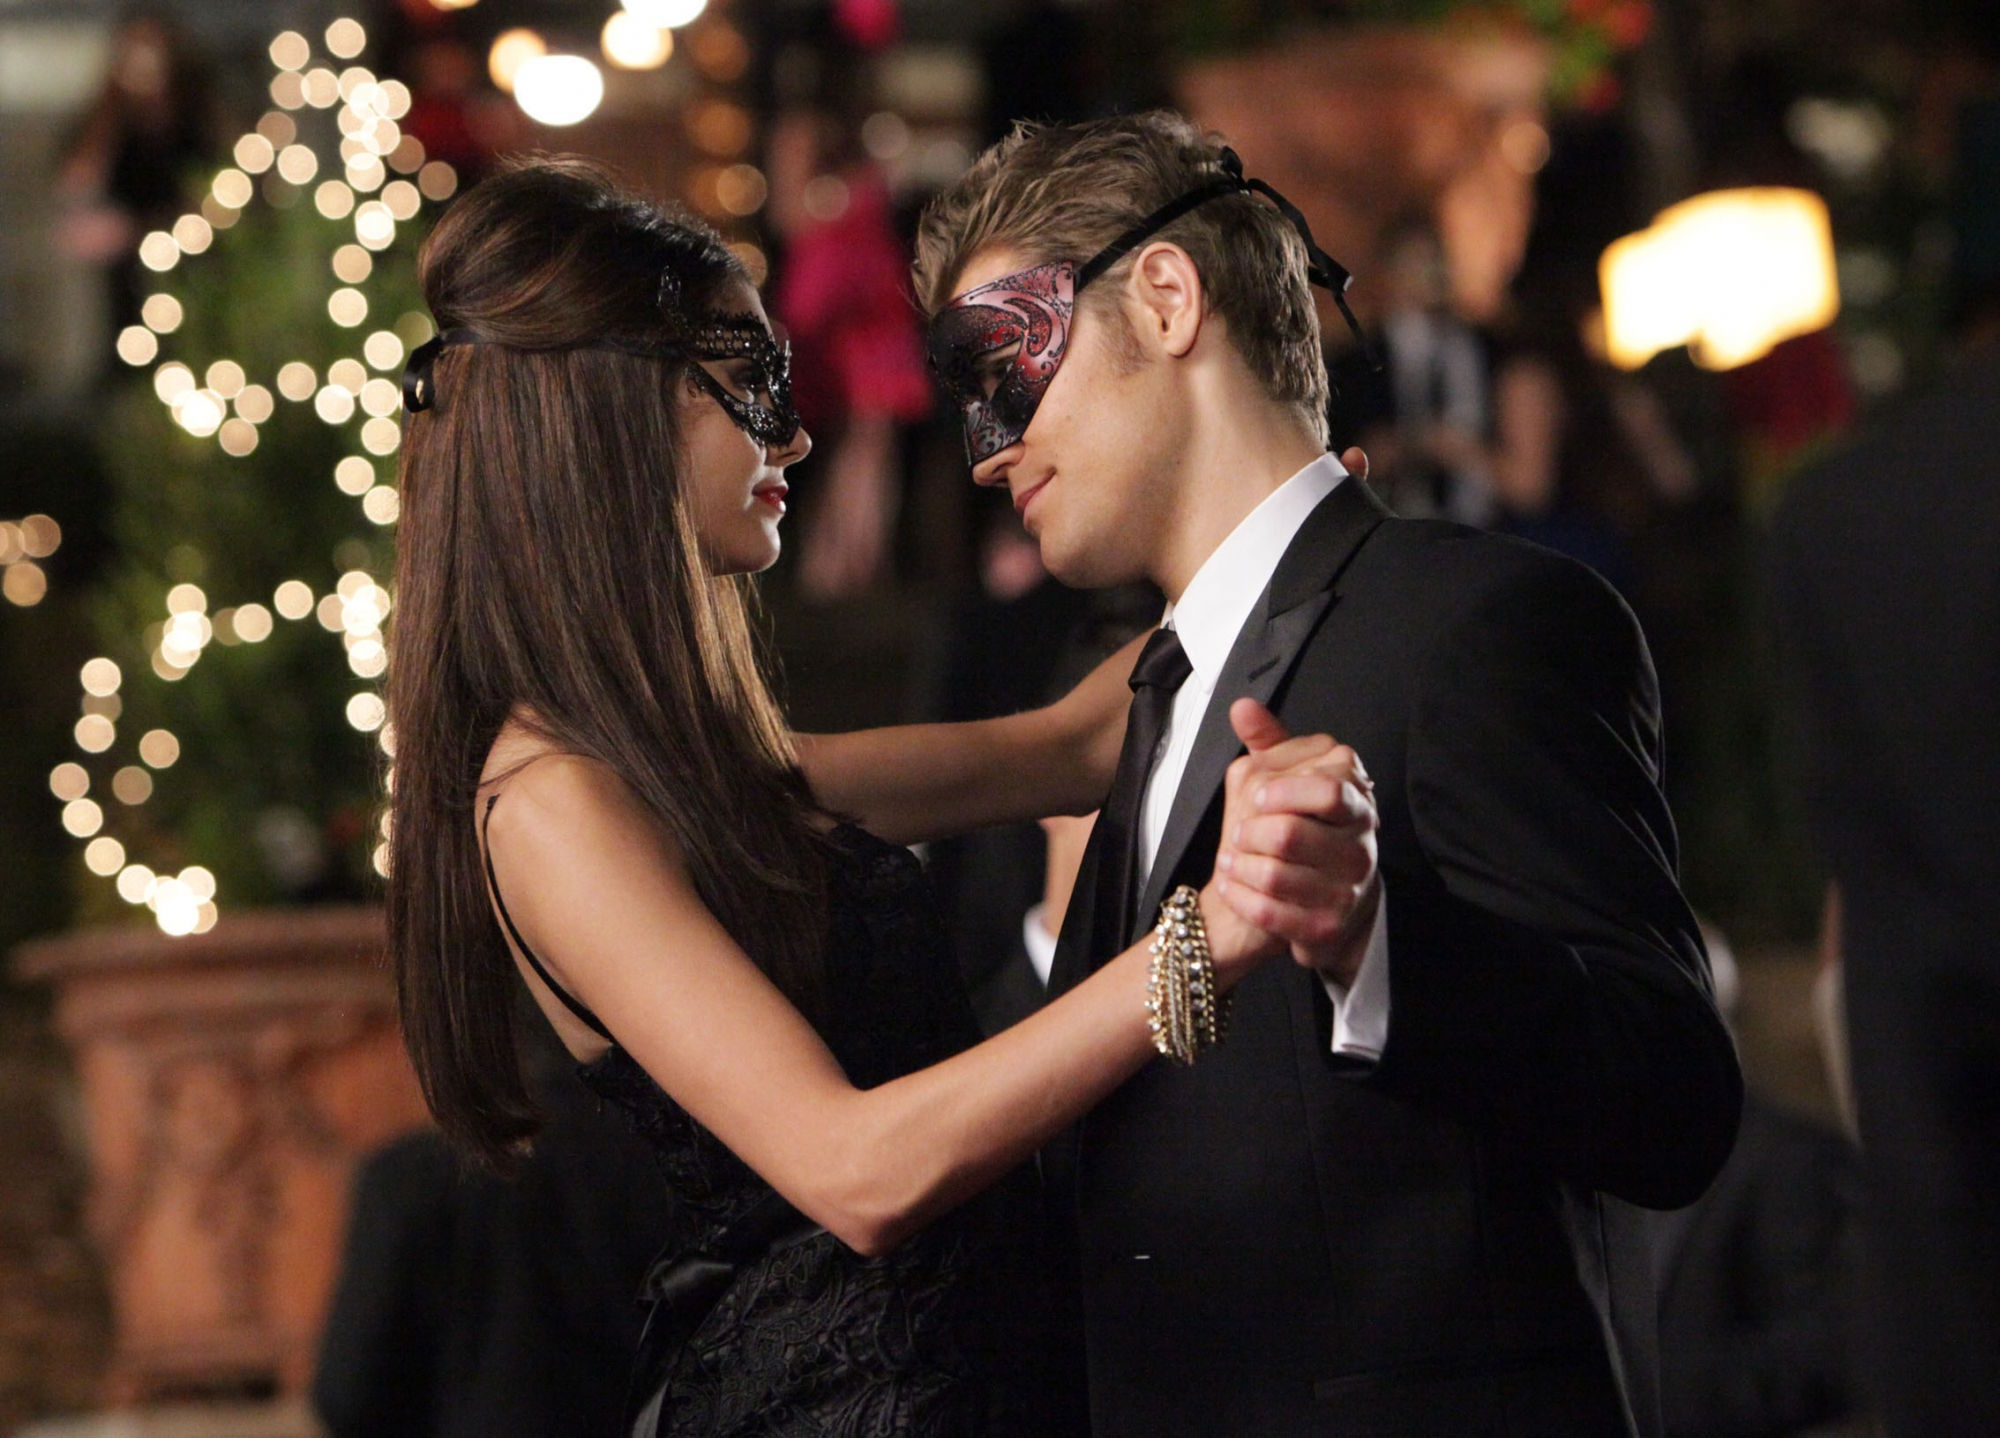 http://images4.fanpop.com/image/photos/16200000/2-07-Masquerade-the-vampire-diaries-16220628-2000-1438.jpg